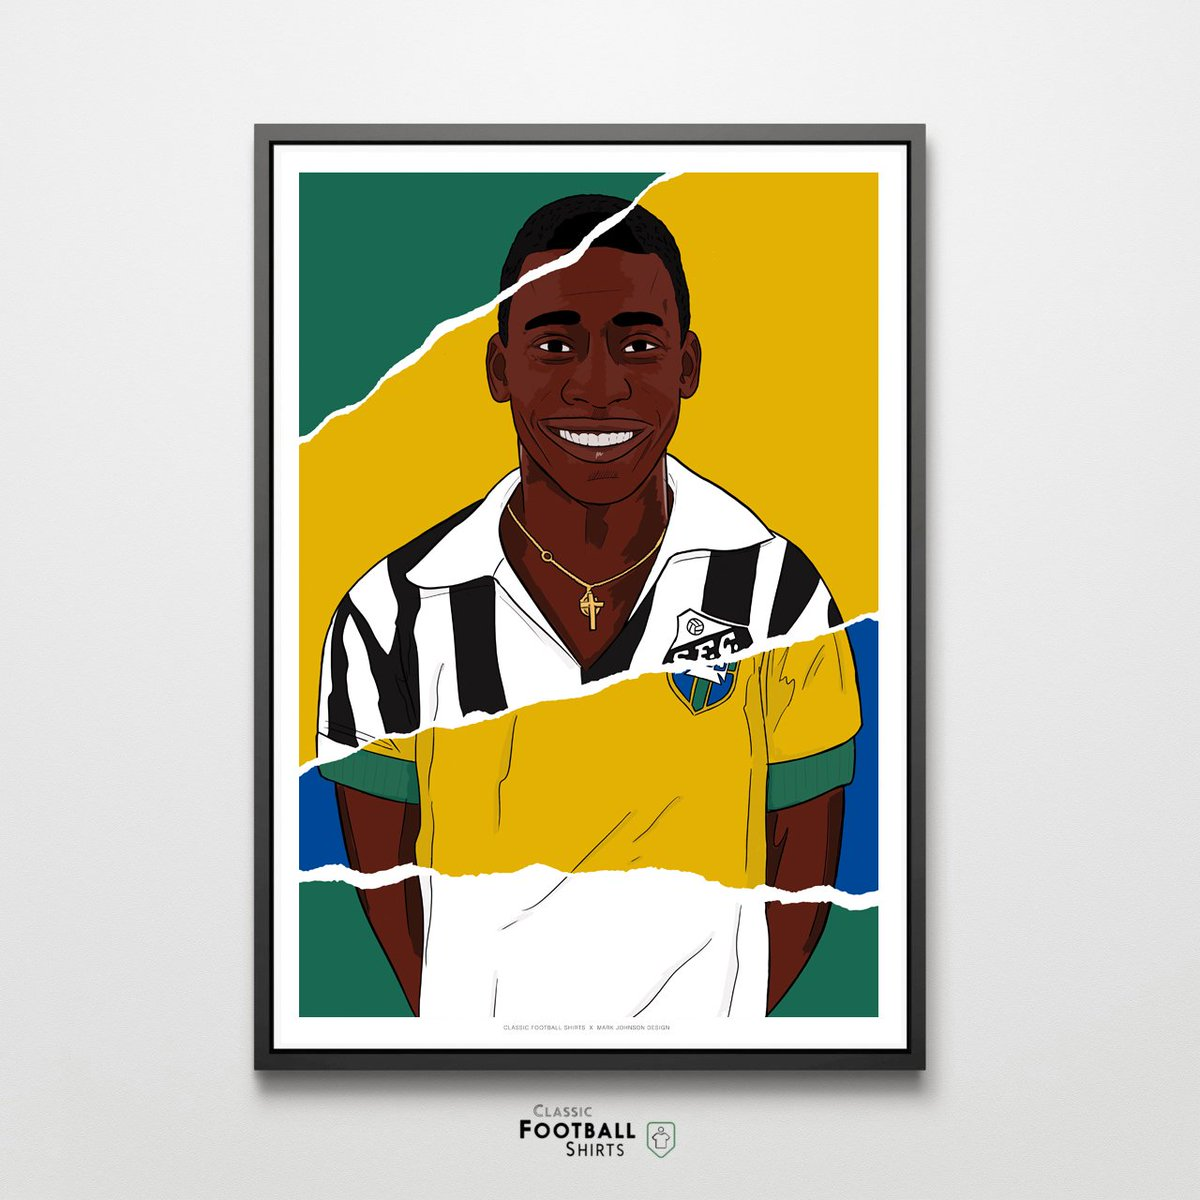 New in prints: Career in Shirts by @MarkJohnson_ Weve just added Pele, Johan Cruyff, Lothar Matthäus and Michel Platini See the full range here - ow.ly/b6bz50vytTC